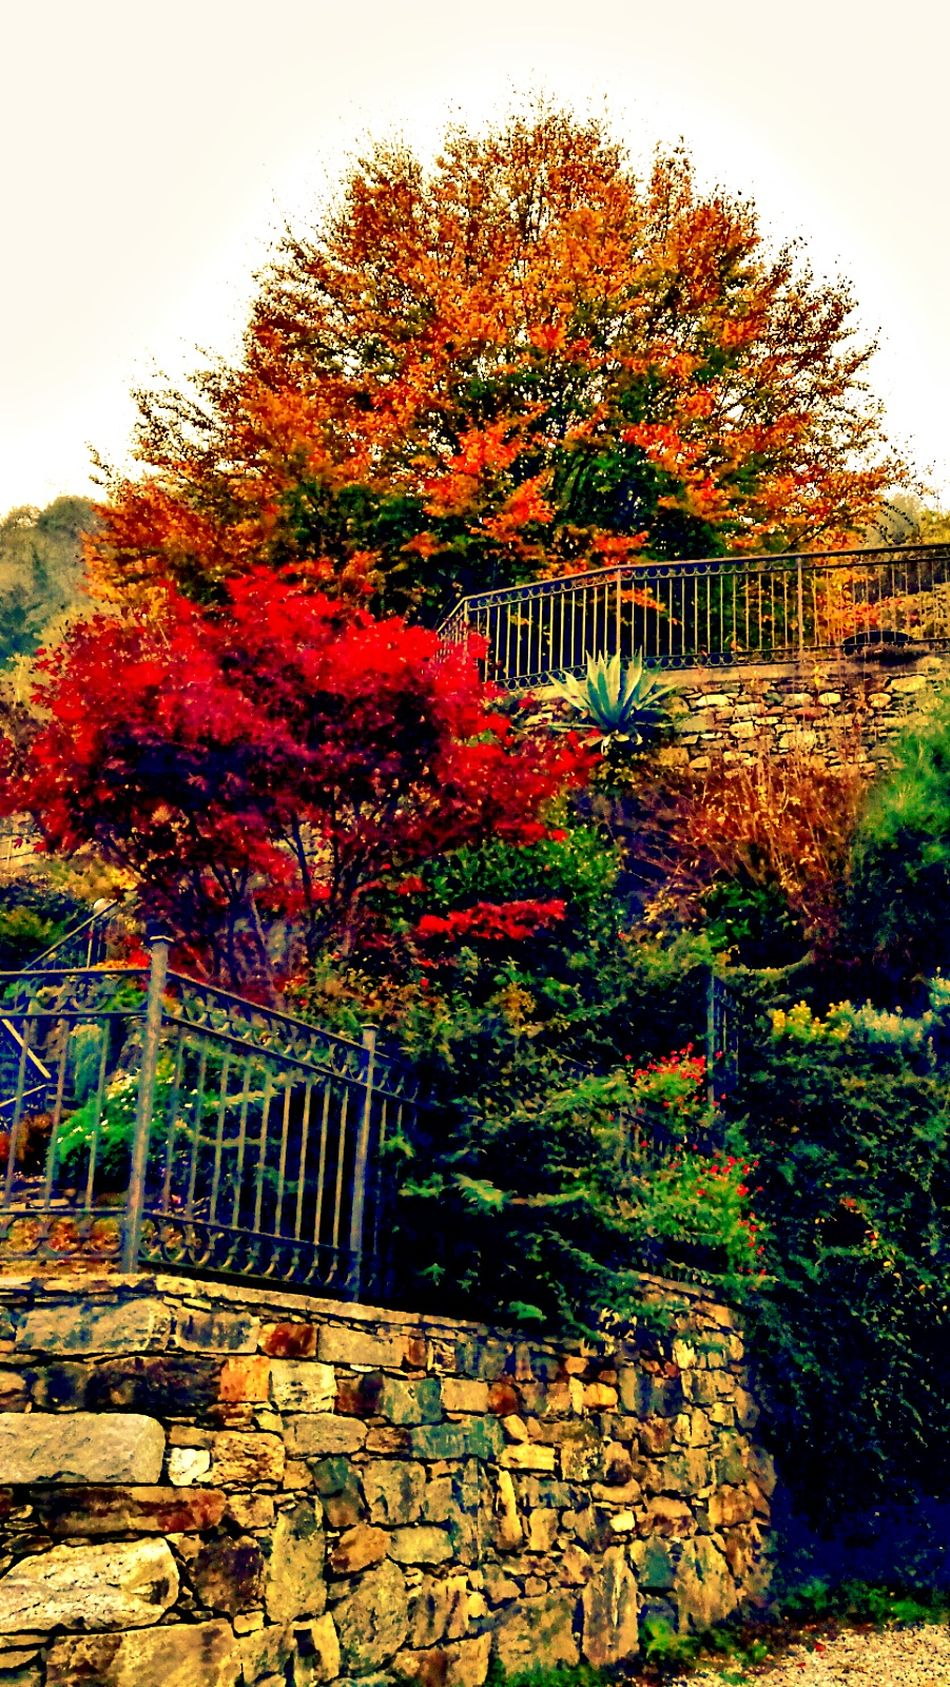 Colors Of Autumn Autumn🍁🍁🍁 Autunno Autumn Colors Colori Landscape Paesaggio Nature Day Beauty In Nature No People Filter Filters Effect Effects & Filters Effects Colorization Autunno Artistico Autunnodigitale